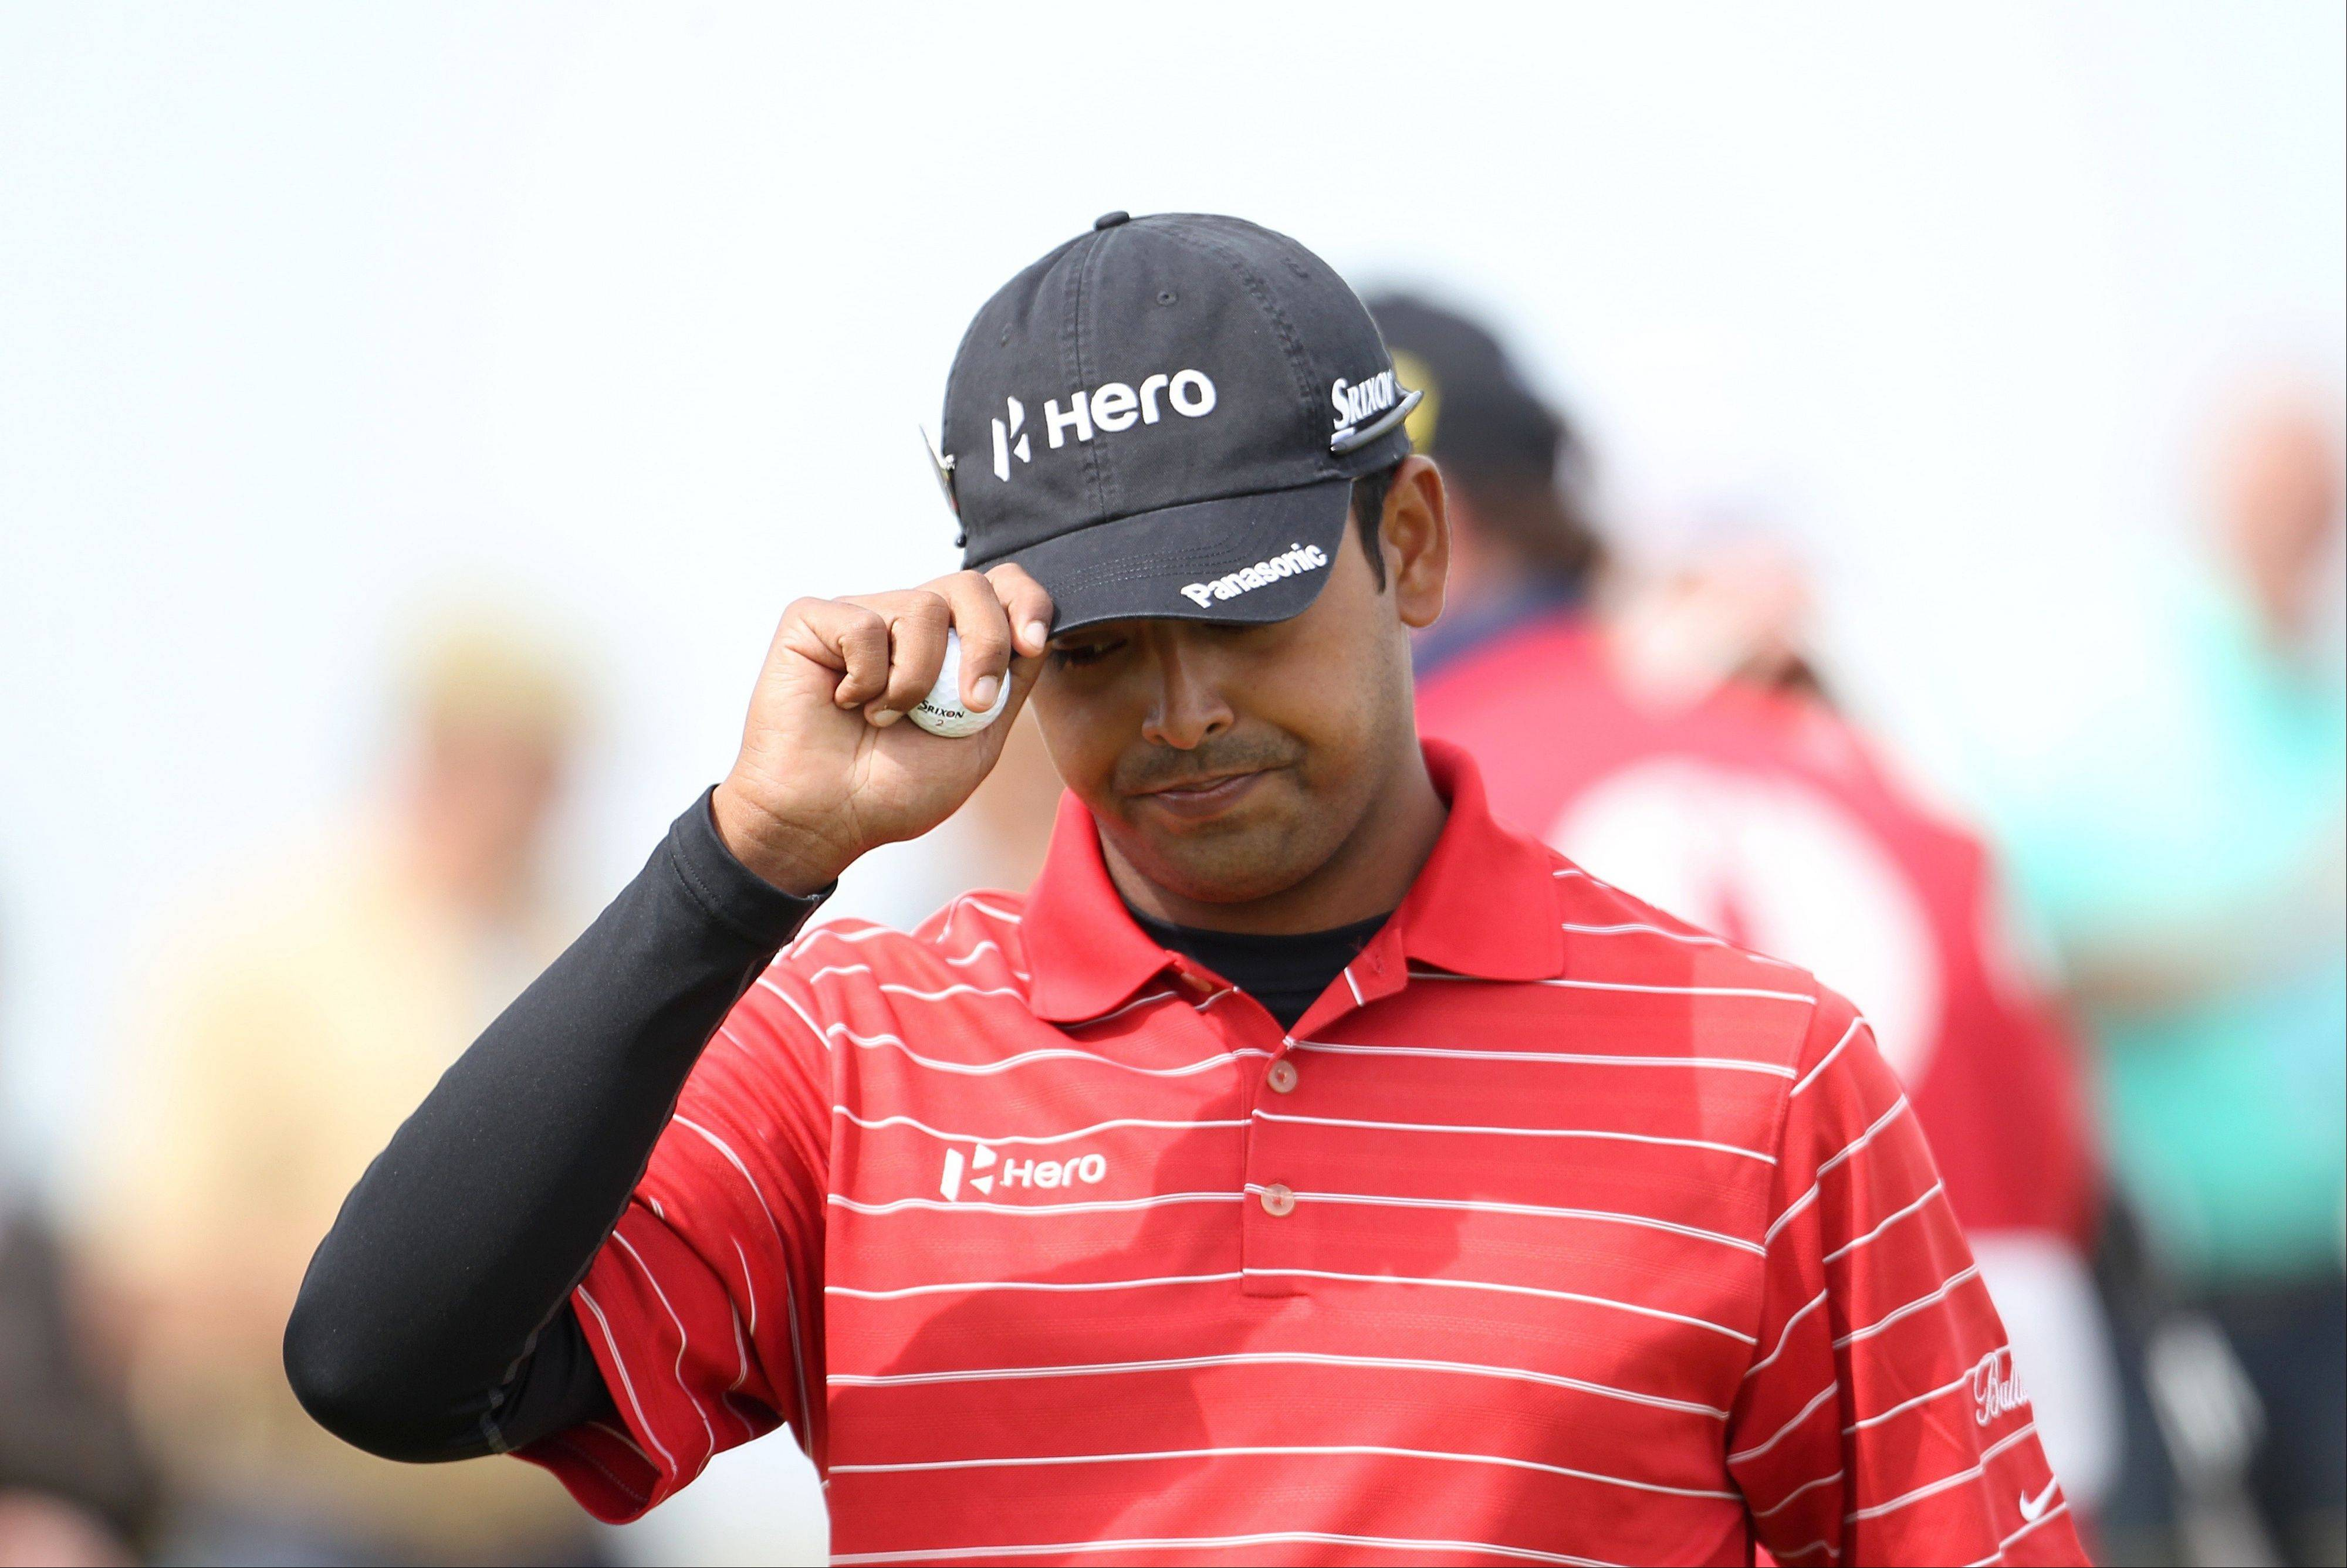 India's Anirban Lahiri acknowledges applause Saturday from the gallery during day three of the 2012 Open Championship at Royal Lytham & St. Annes Golf Club, Lytham & St Annes. The 25-year-old Indian, making his Open debut, made the first hole in one of the 2012 tournament Saturday on the par-3 ninth hole from 150 yards.